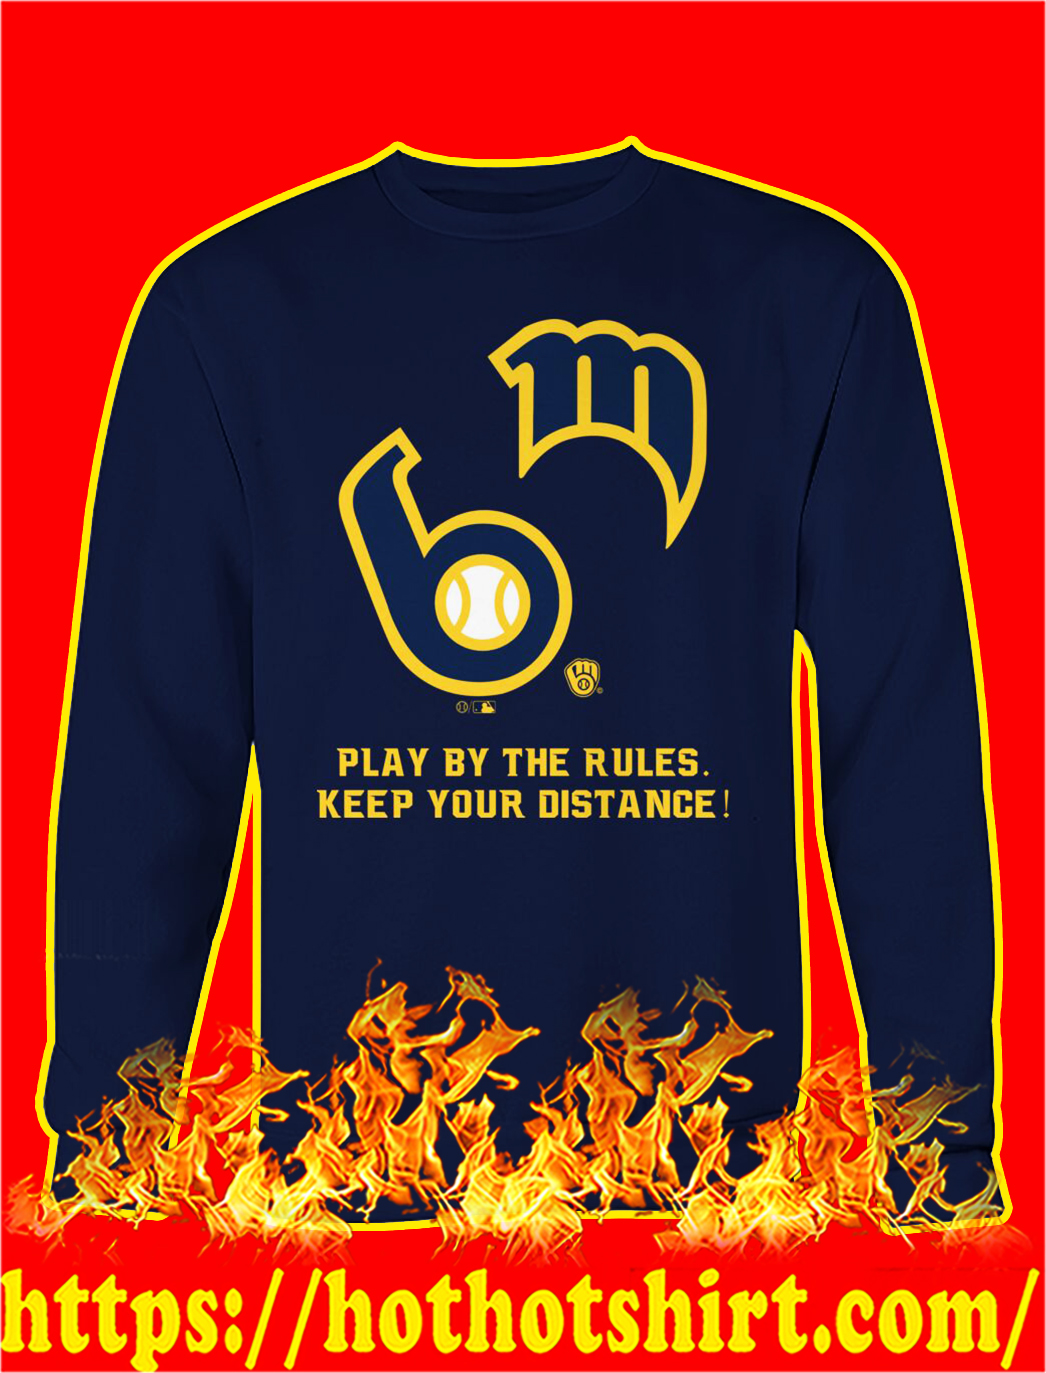 MLB play by the rules keep your distance sweatshirt